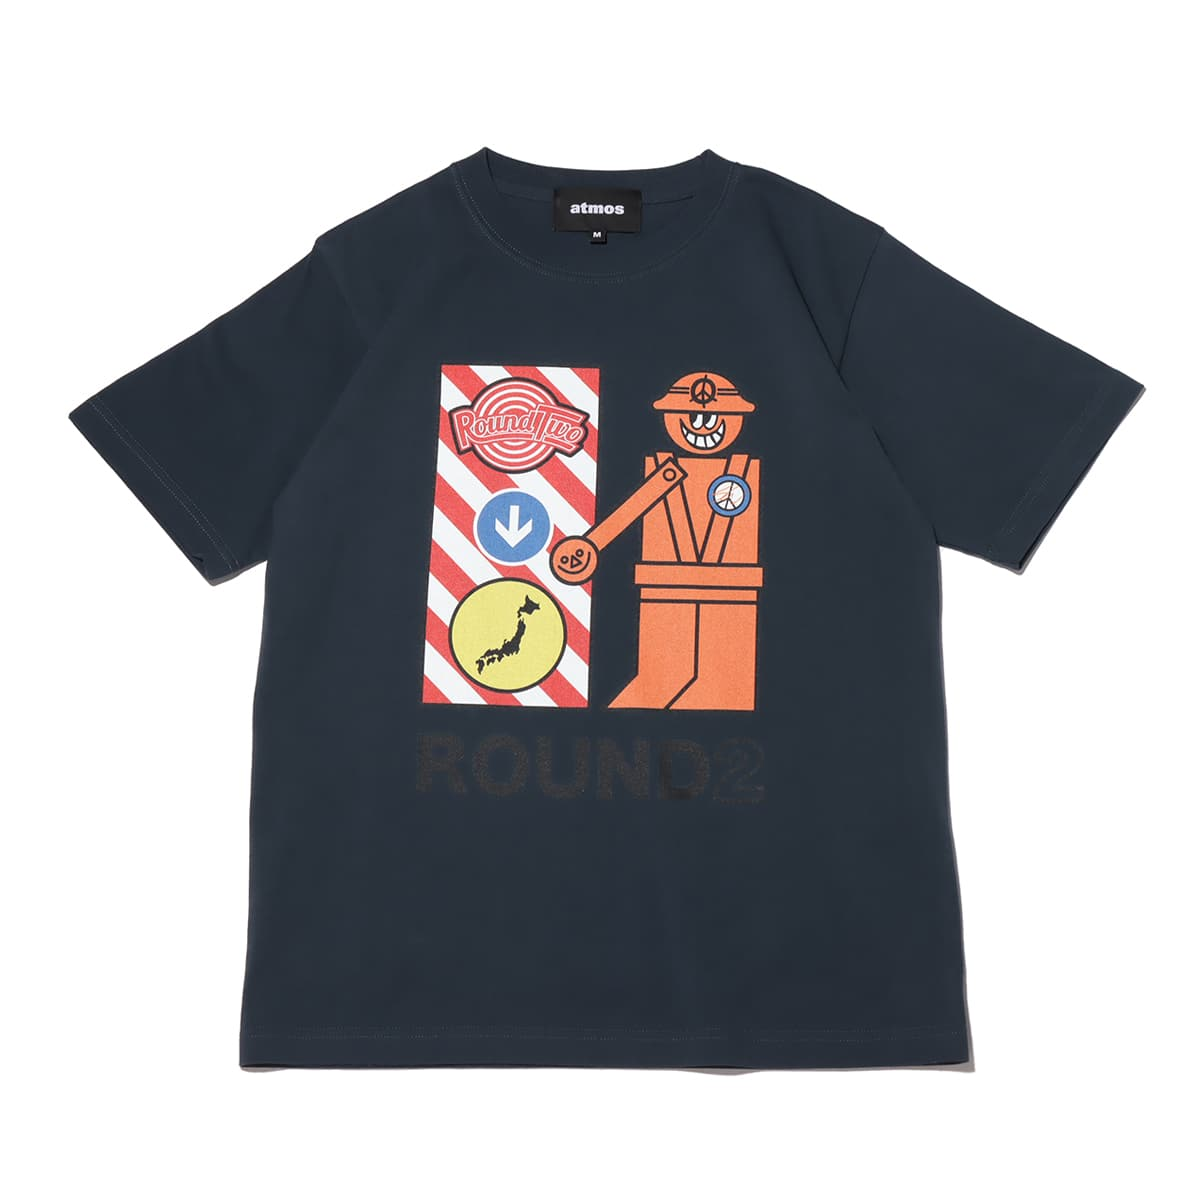 atmos x ROUND TWO CROSS GUARD charcoal 21SP-S_photo_large